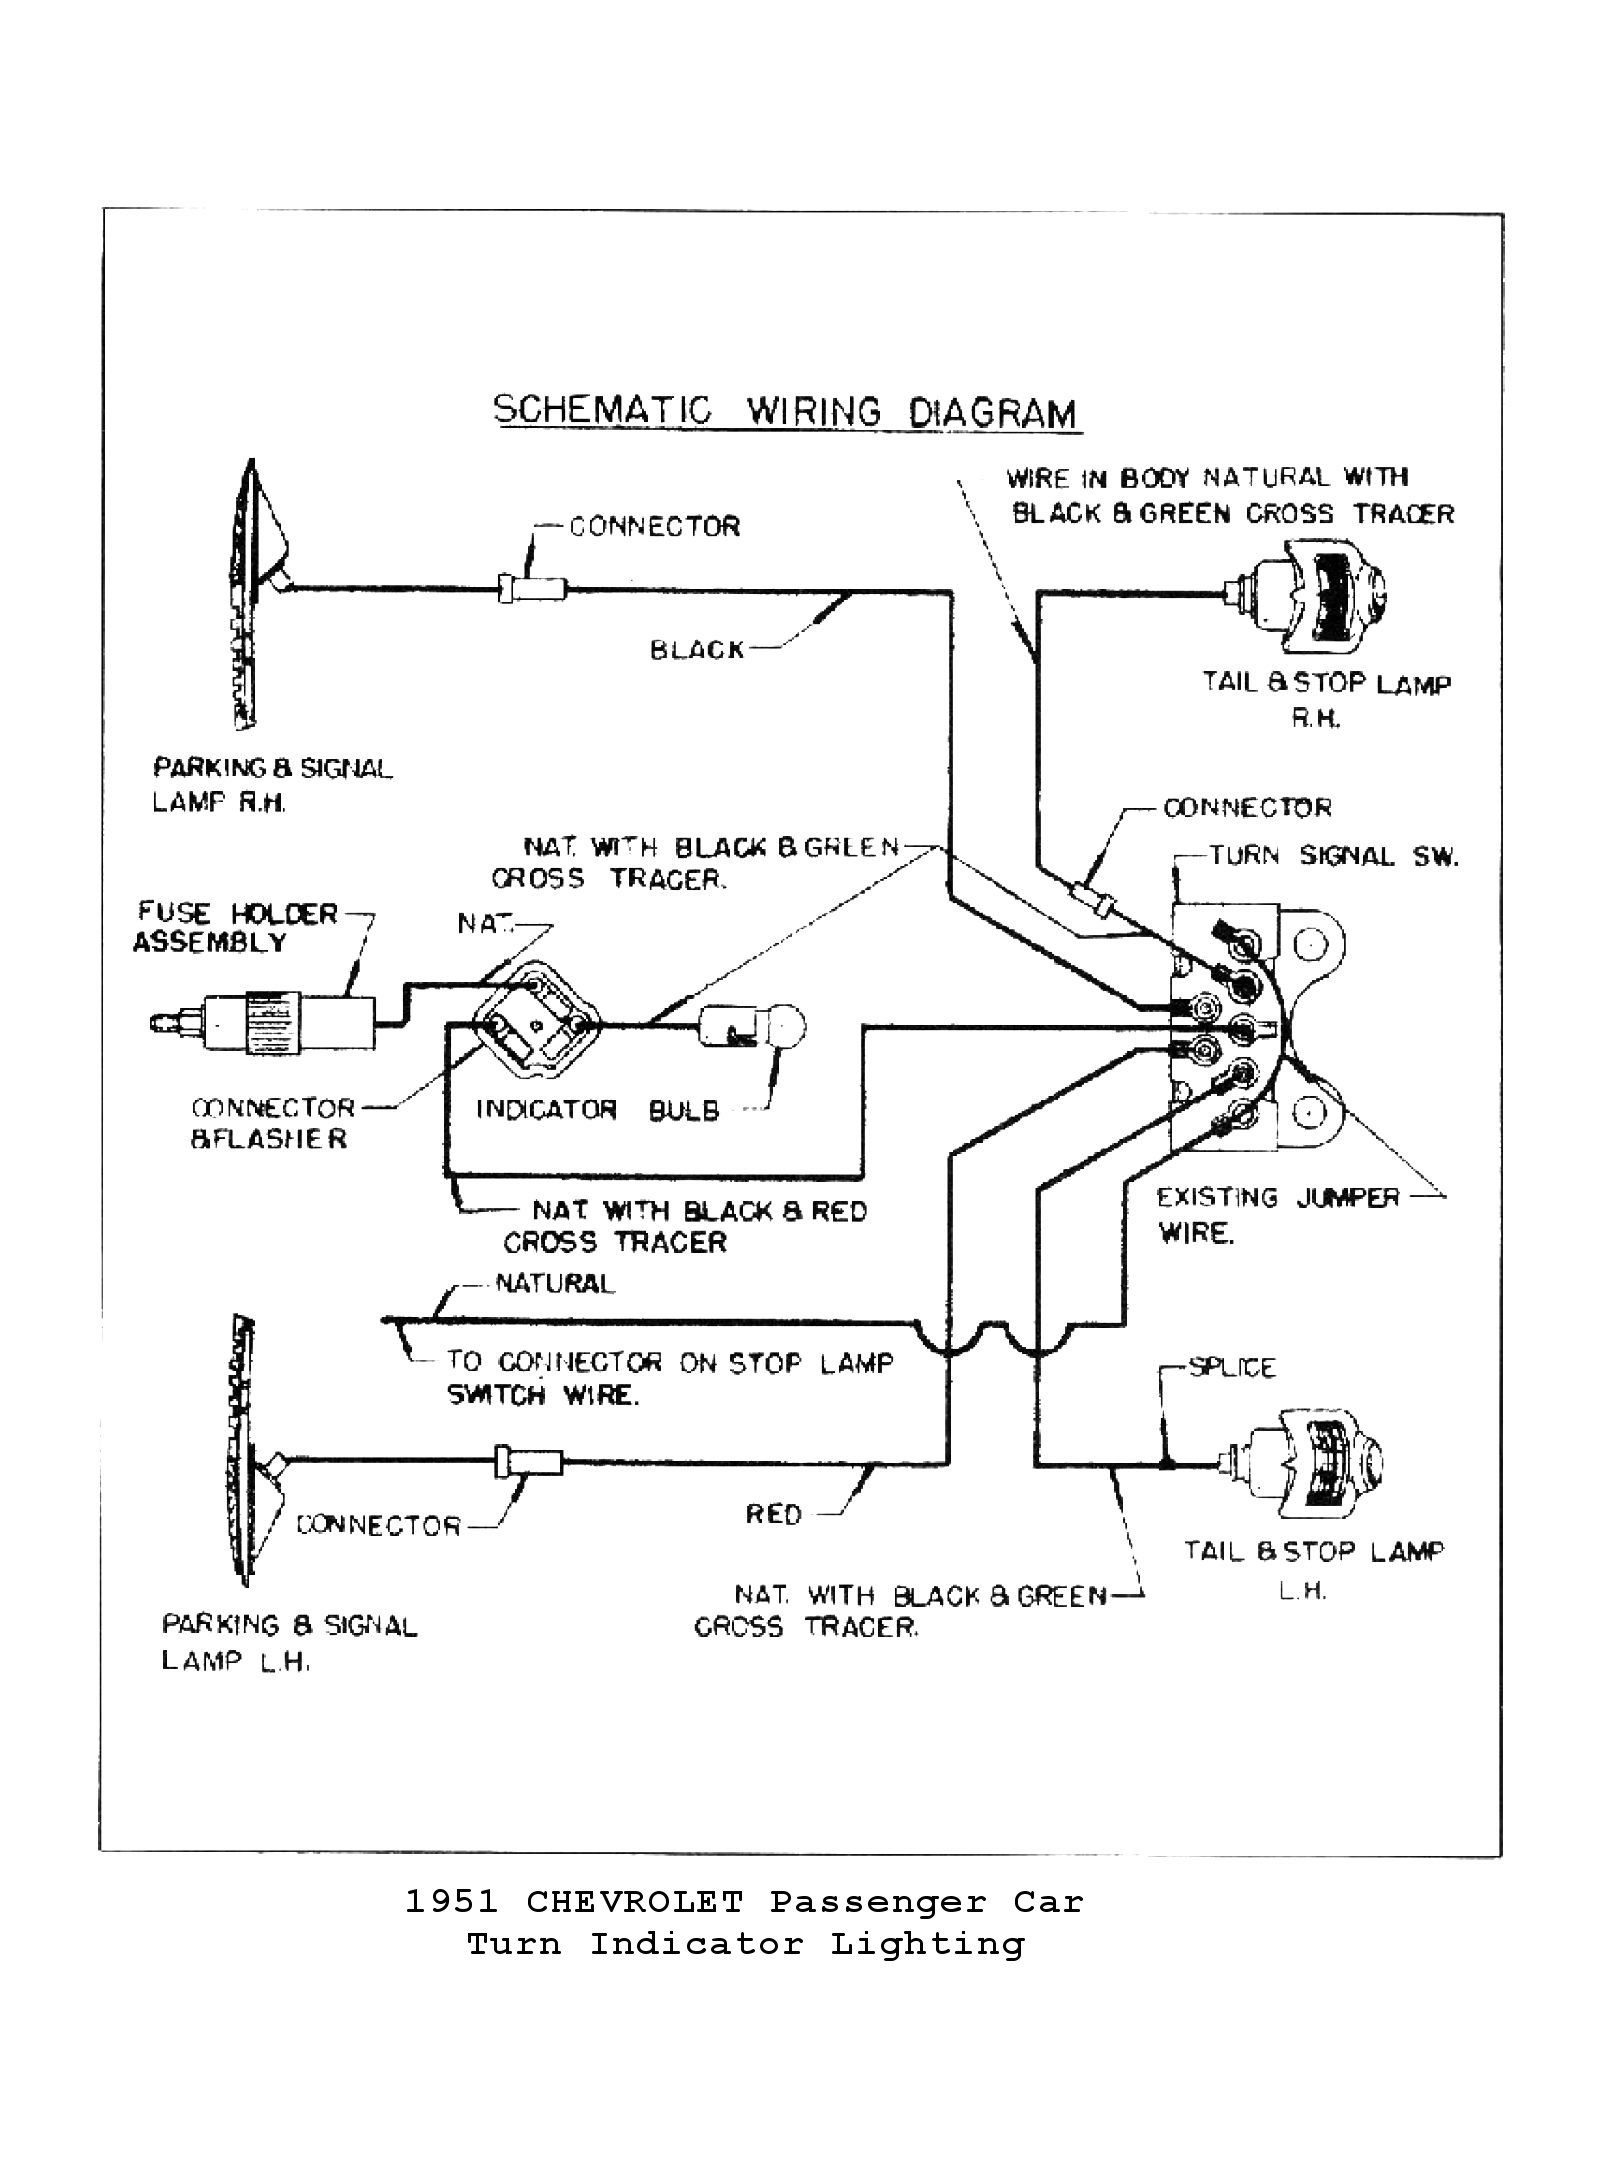 1981 chevy pickup wiring diagram 52 chevy pickup wiring diagram #11